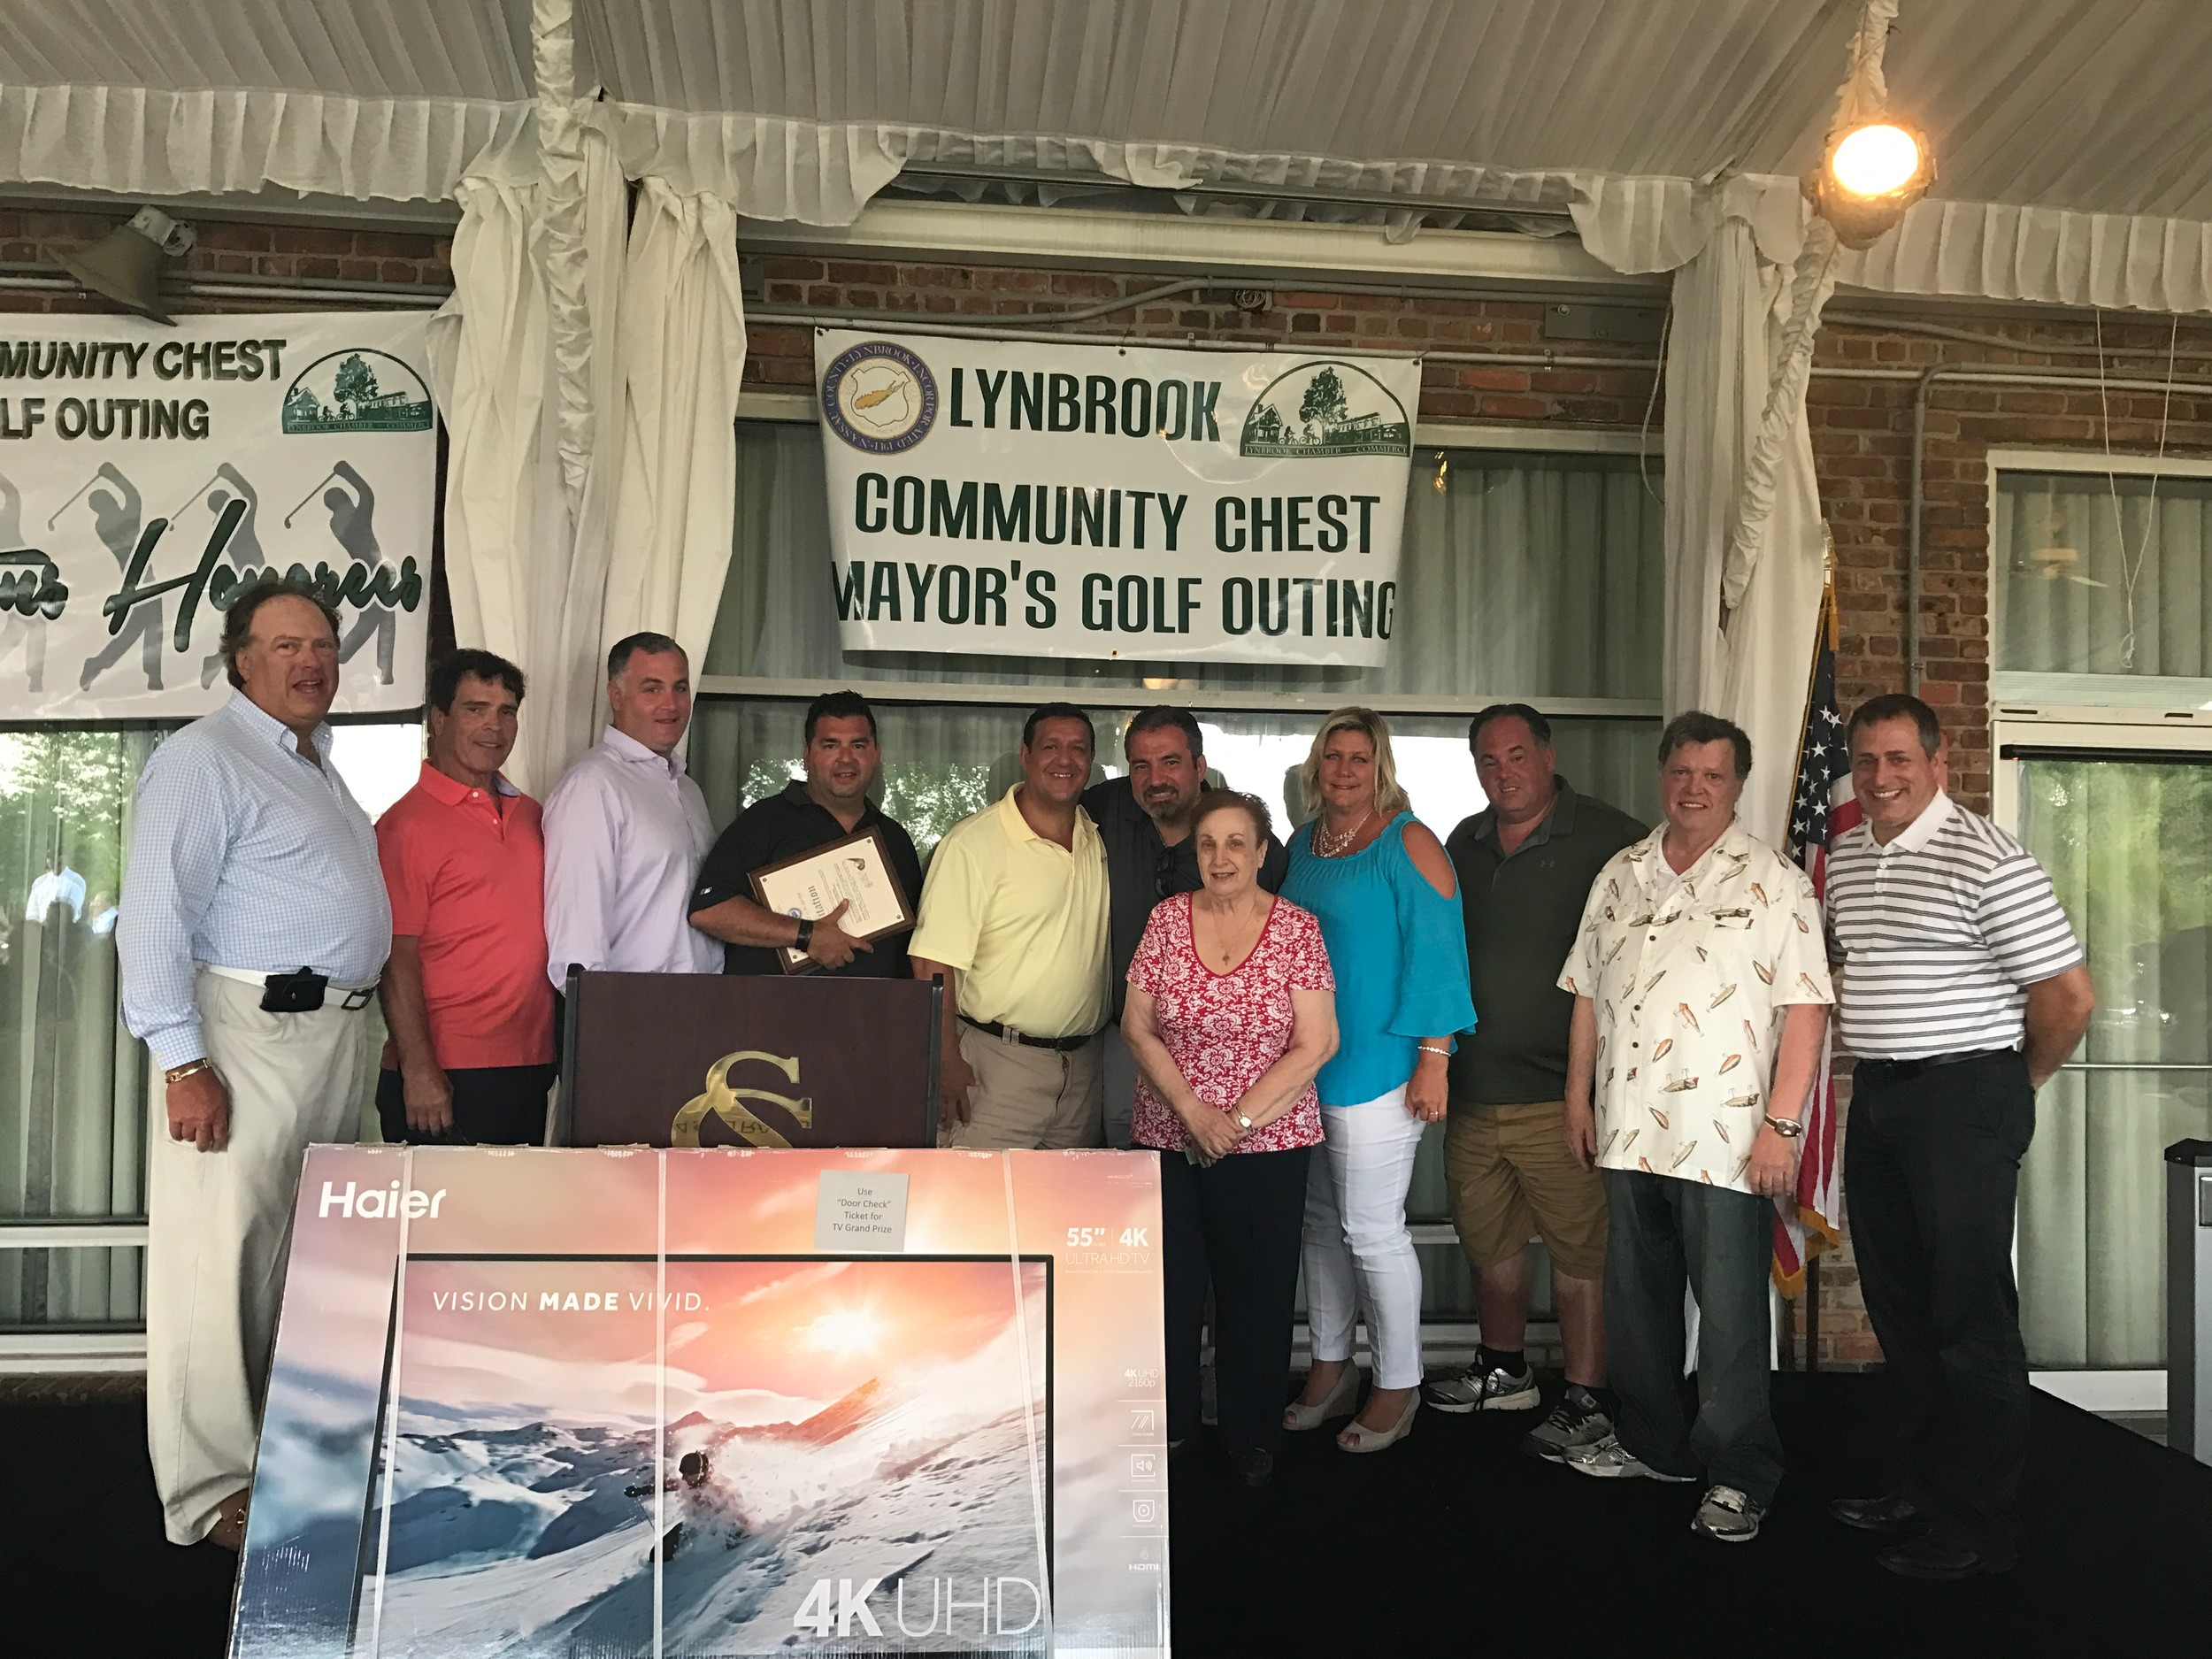 Golf outing raises money for Lynbrook Community Chest